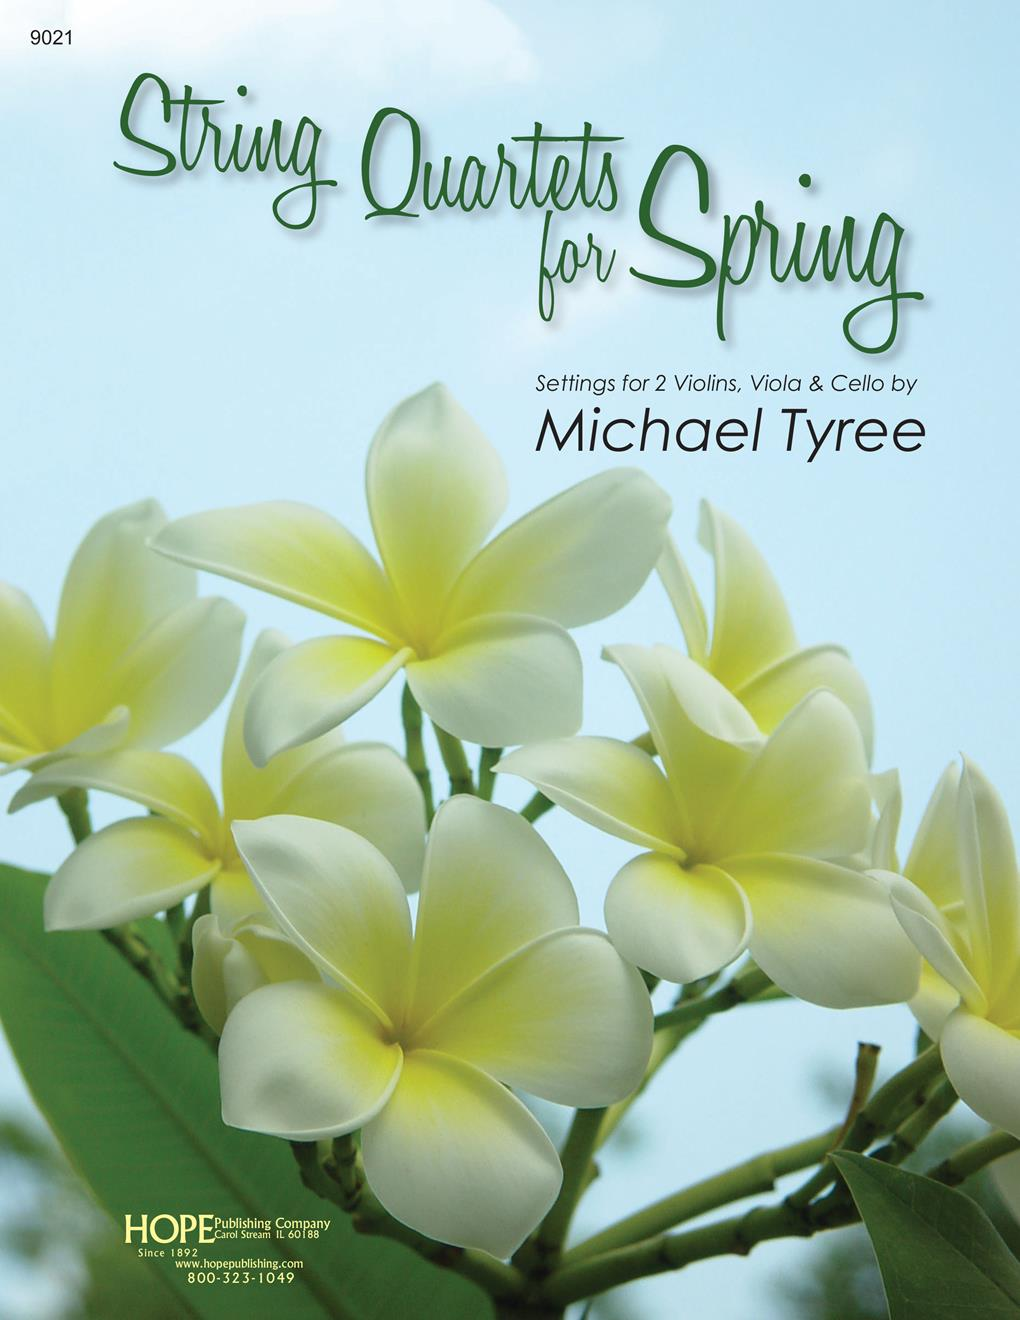 String Quartets for Spring - Book and CD-ROM w- parts Cover Image